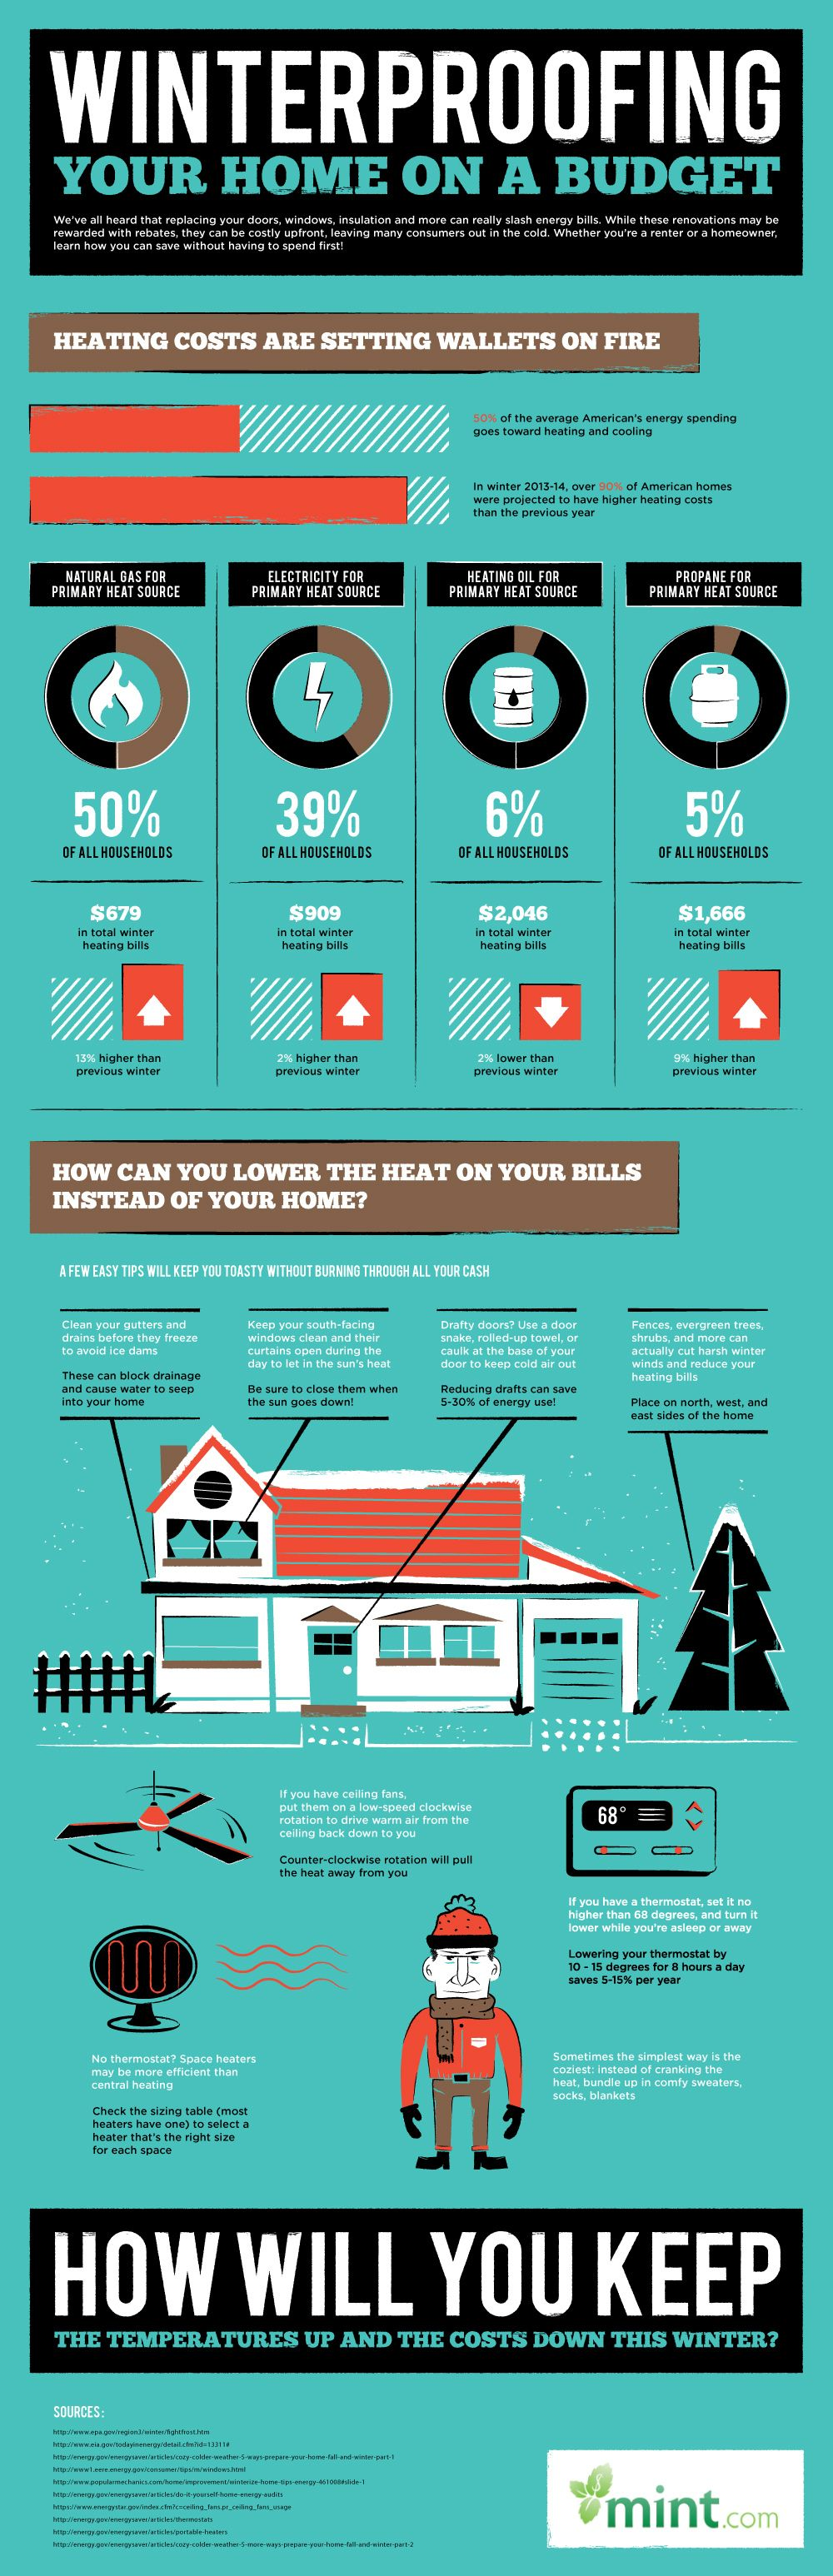 Winterproof Your House on a Budget